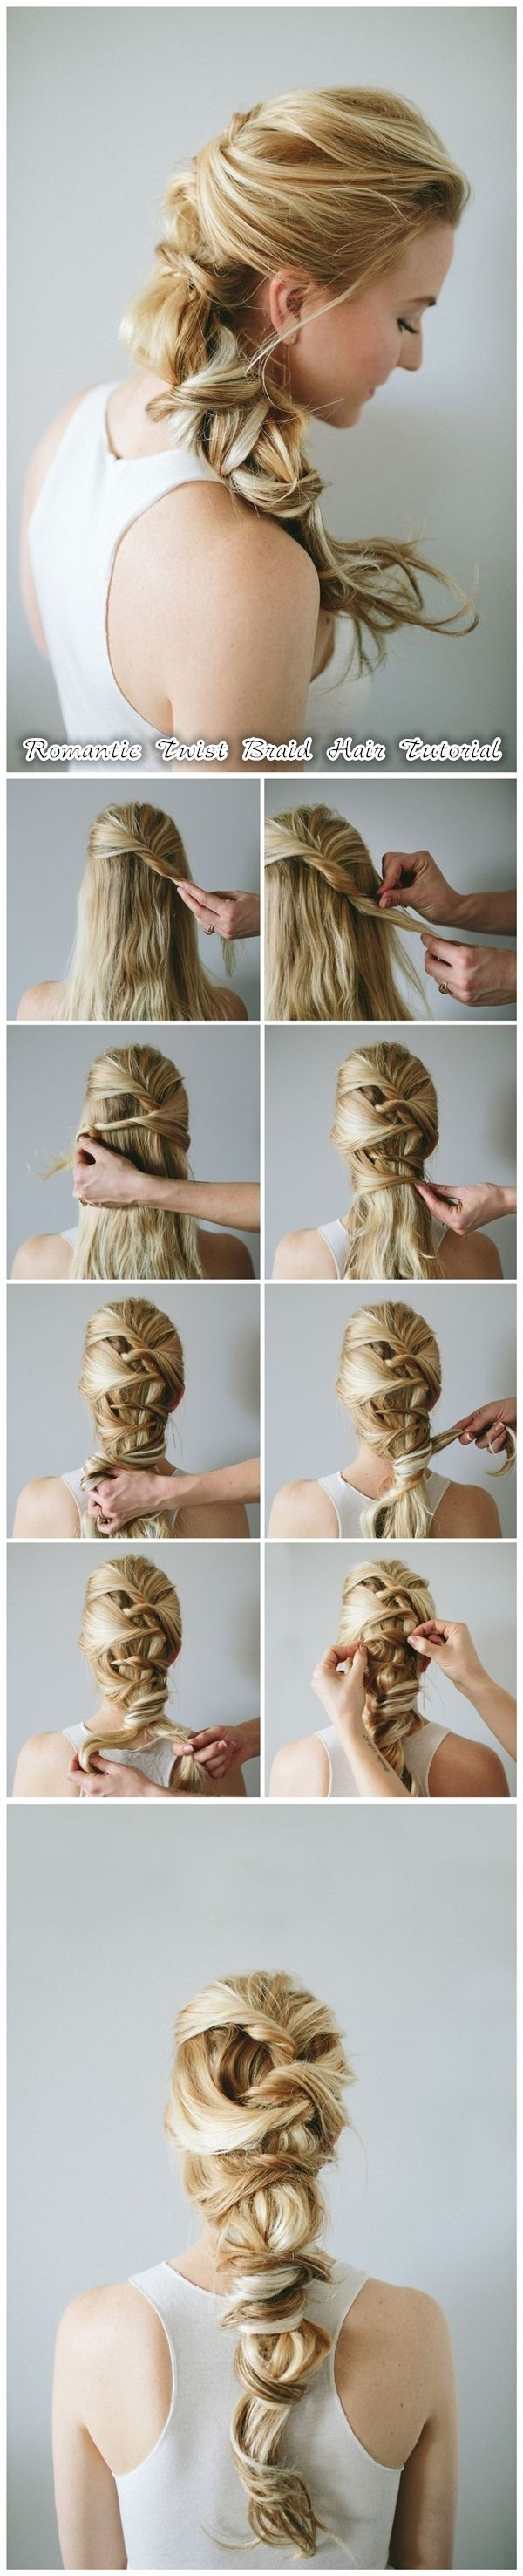 DIY Braid für langes Haar: Romantische Twist Braided Frisuren